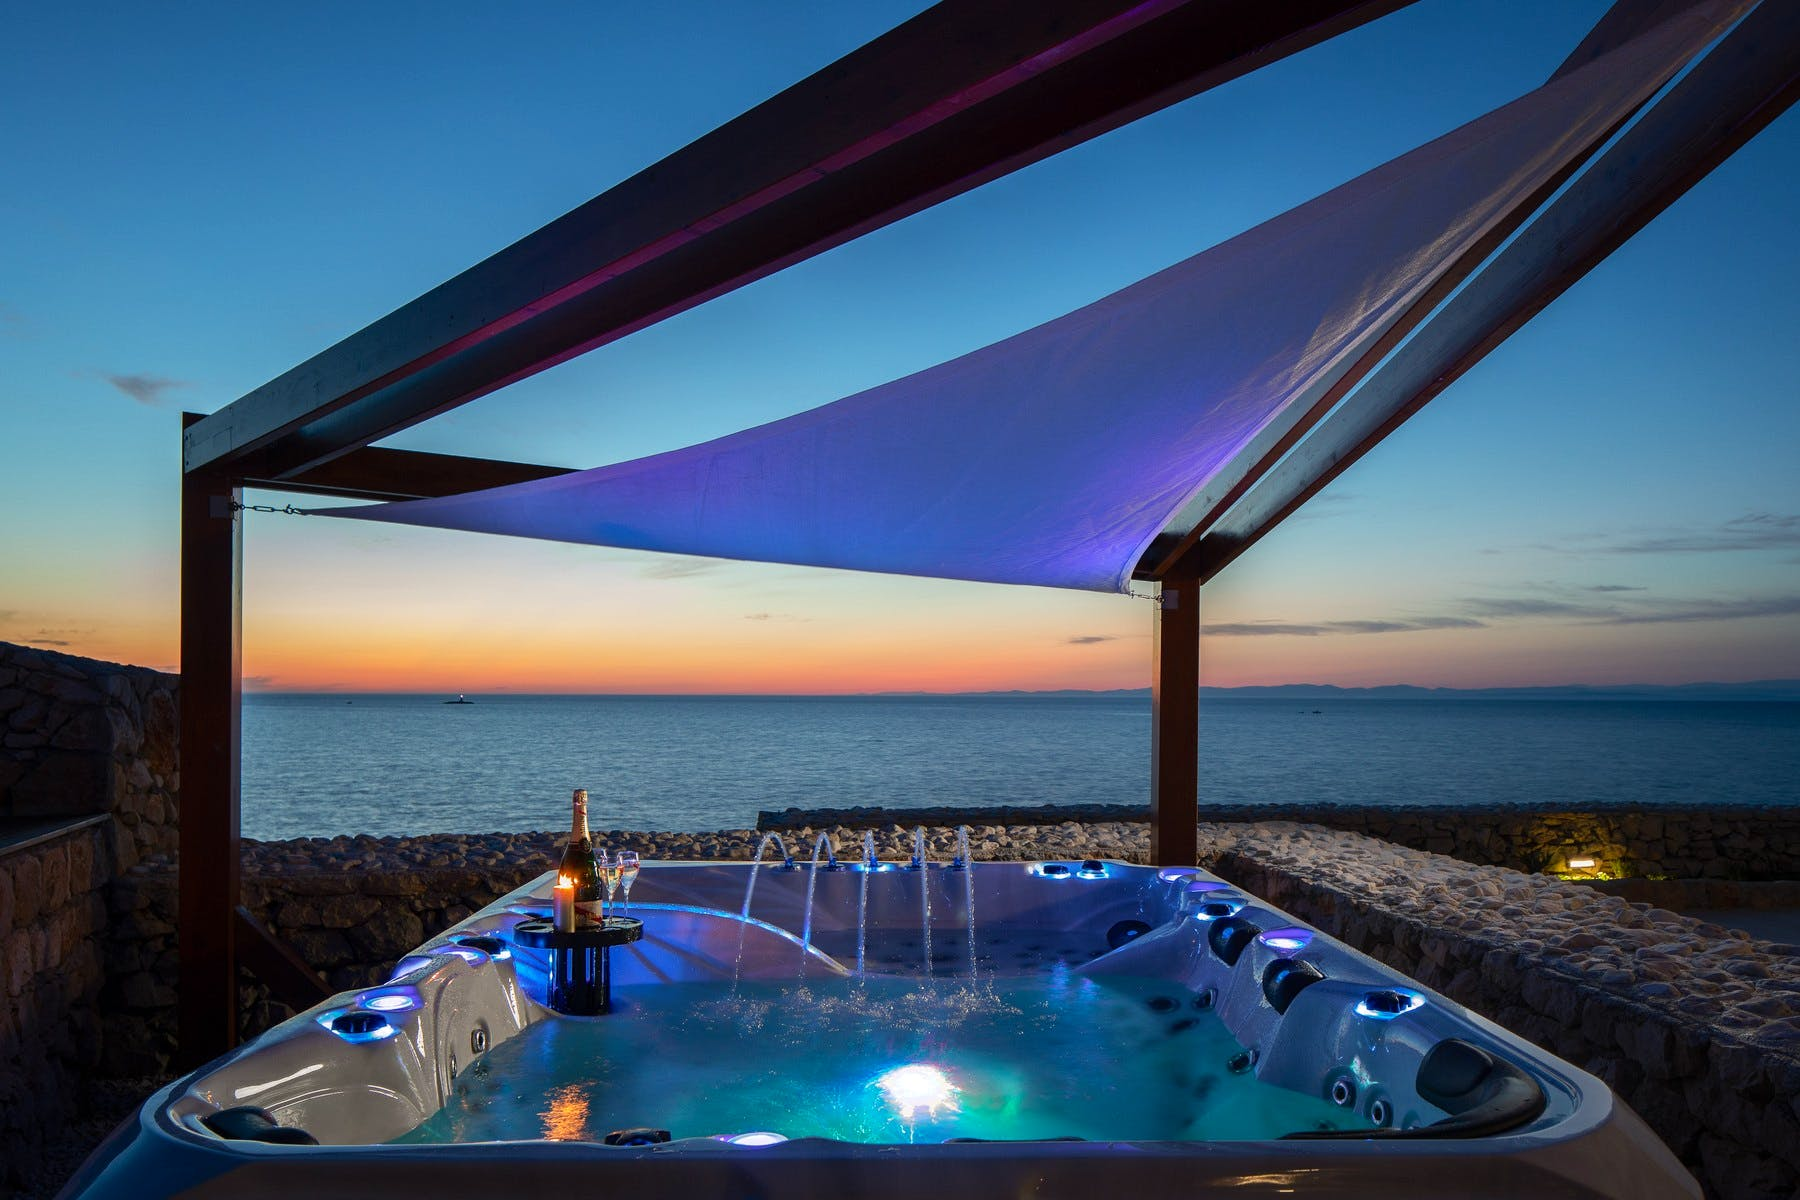 Hot tub in front of the villa